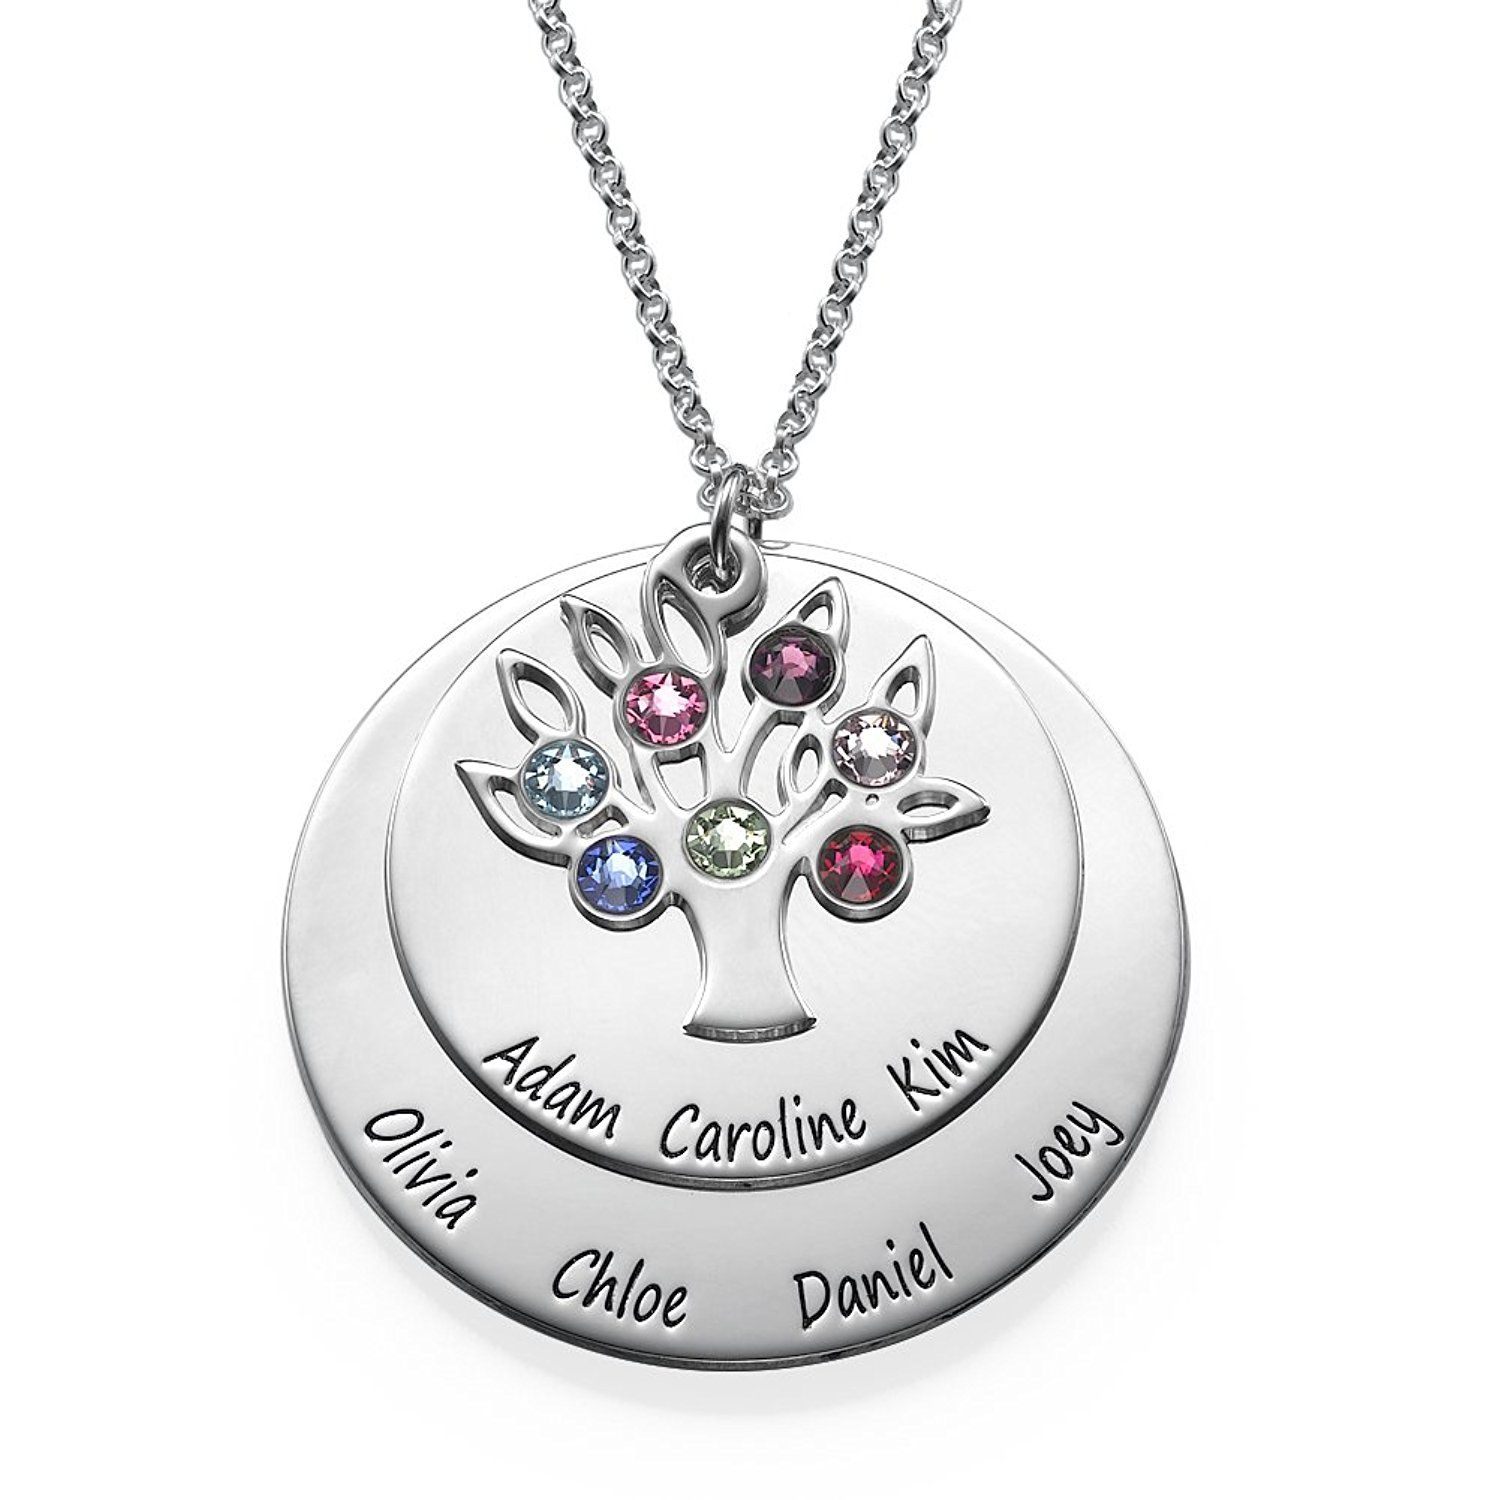 birthstone gold silver s ip jewelry com necklace family pendant available keepsake over in personalized sterling heart mother grandkid walmart